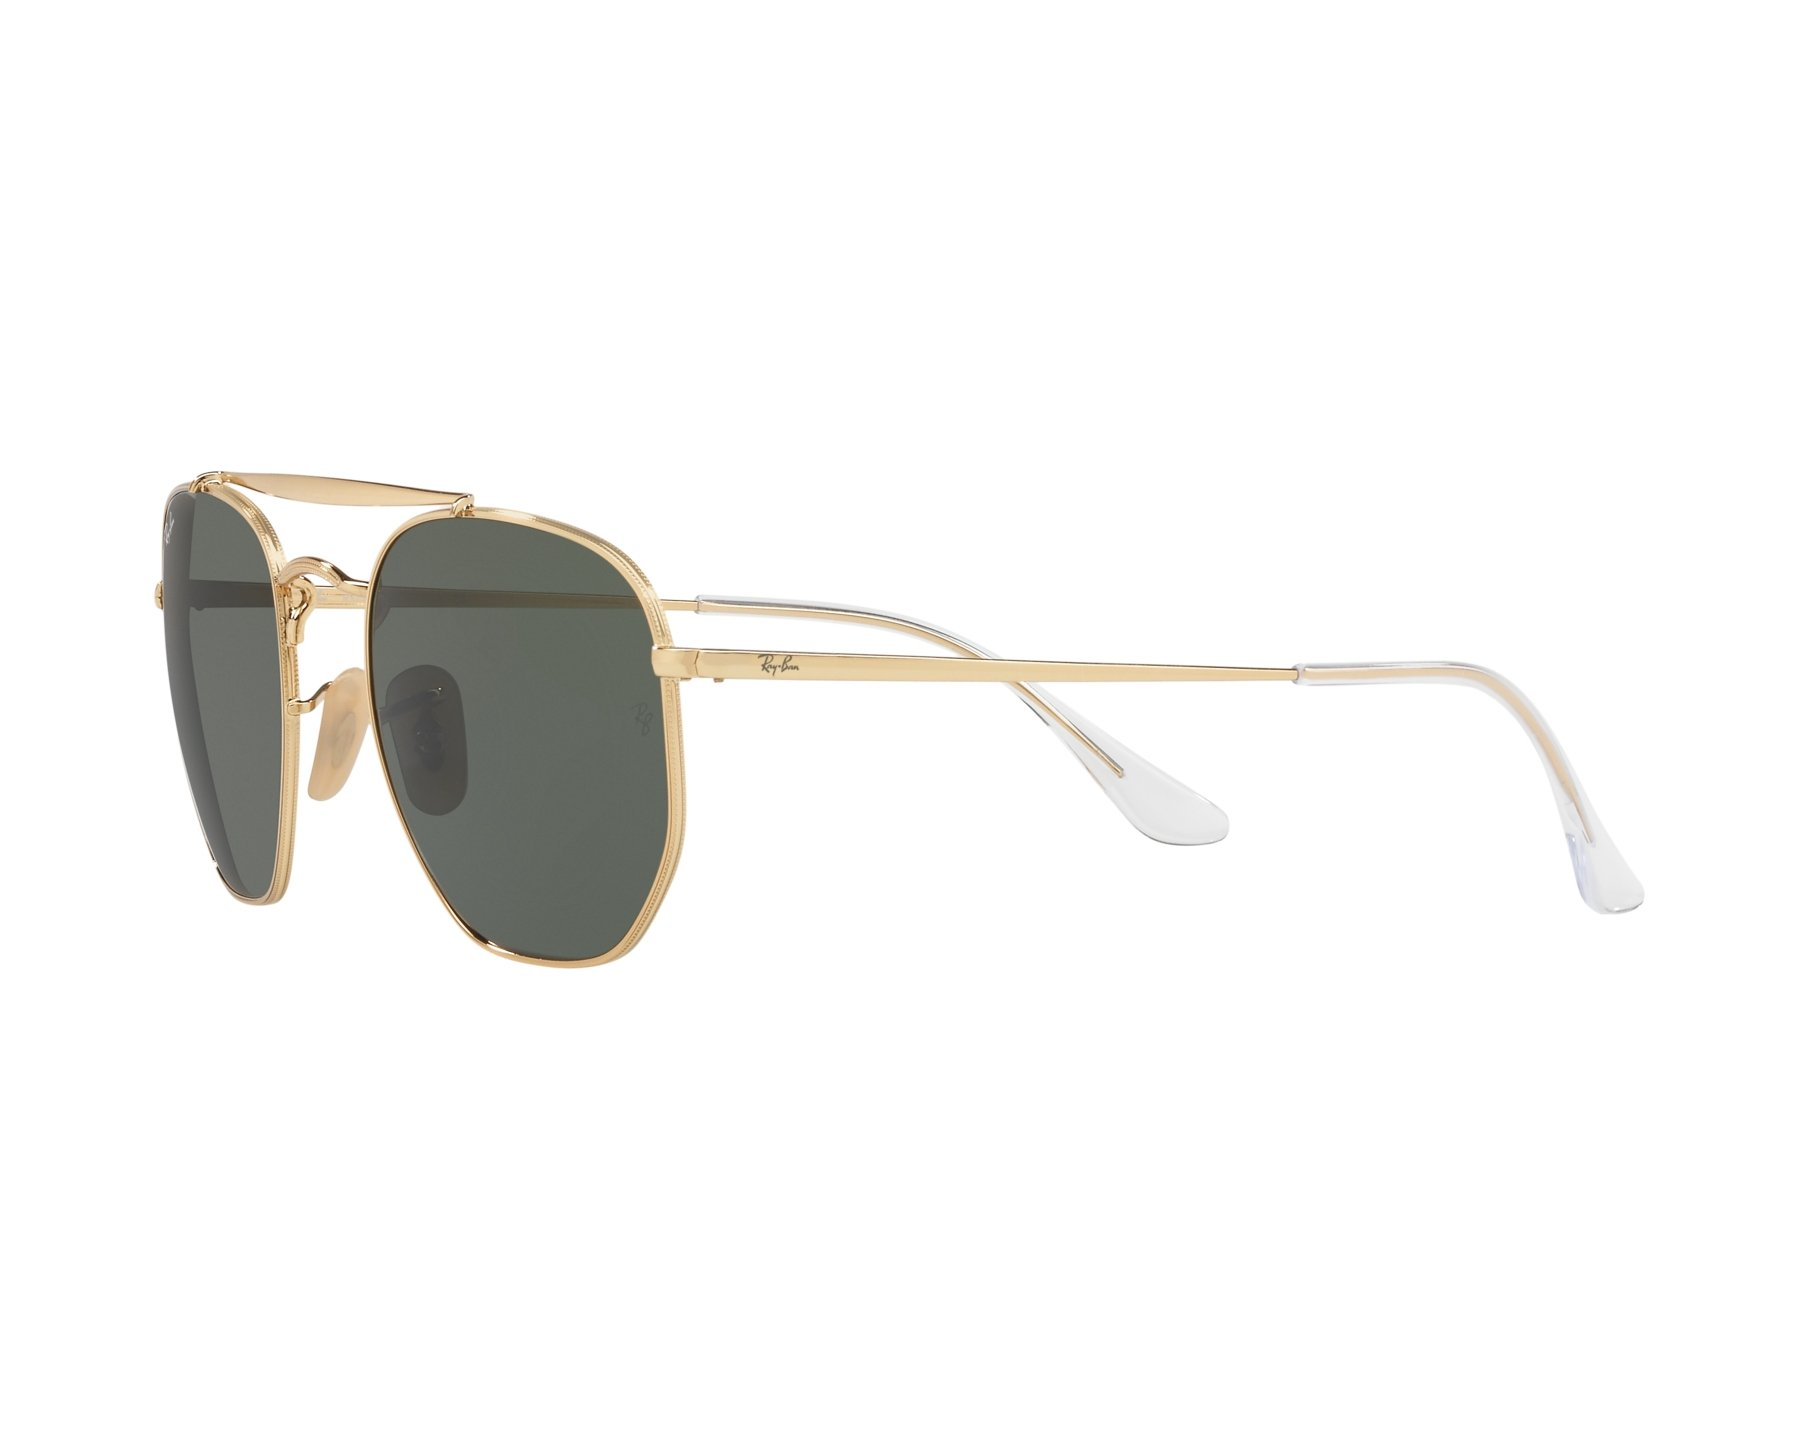 839ee9fa456 Sunglasses Ray-Ban RB-3648 001 54-21 Gold 360 degree view 3